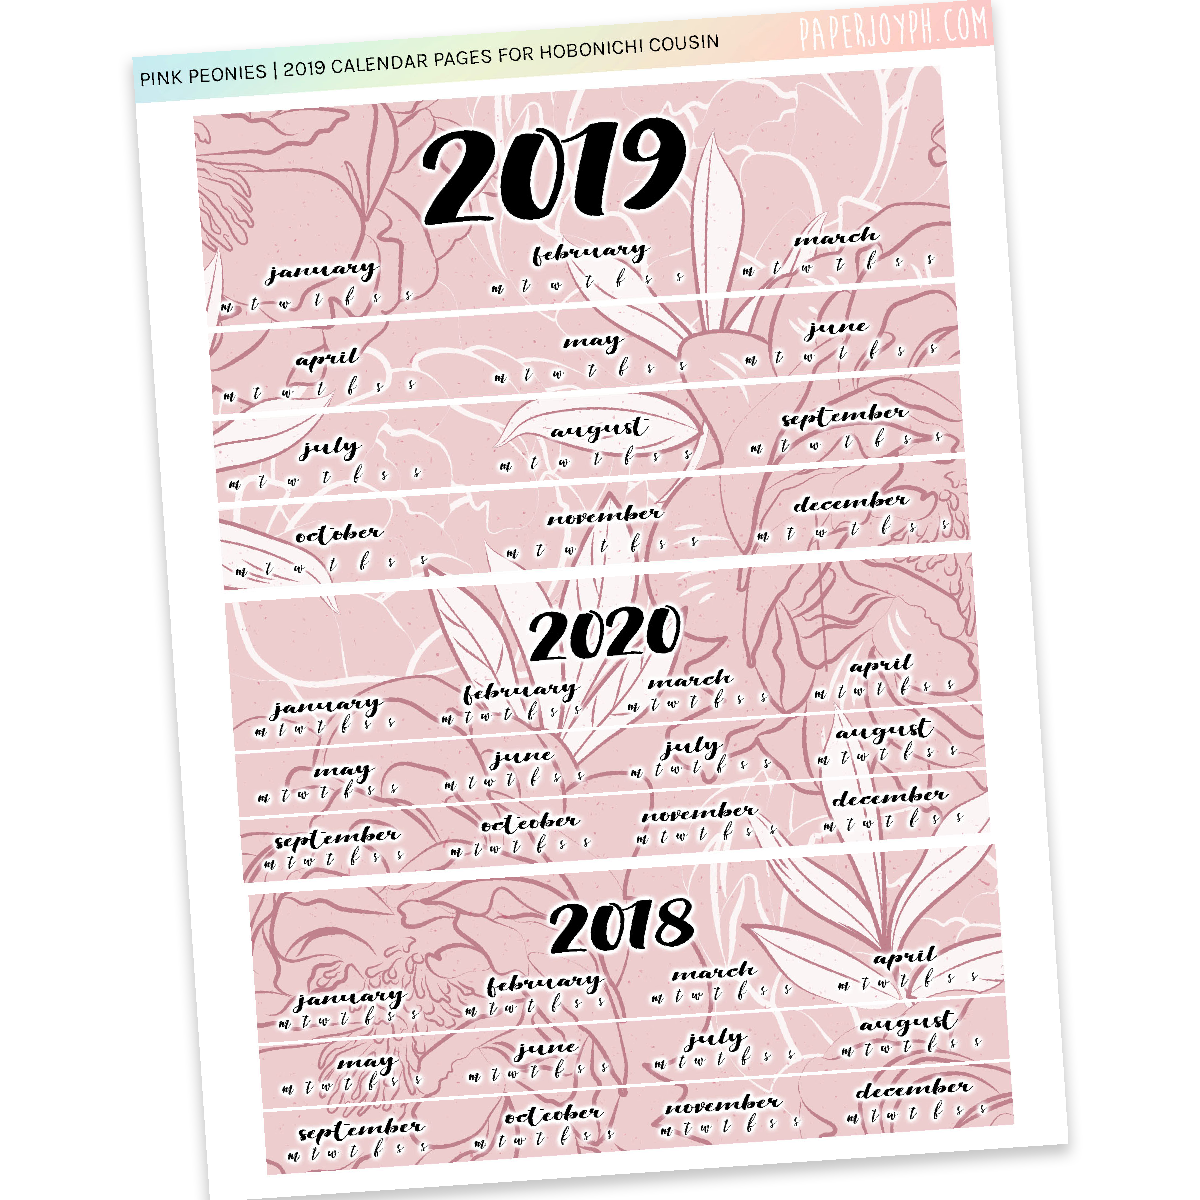 HOBONICHI COUSIN | CALENDAR PAGES | Pink Peonies 2019